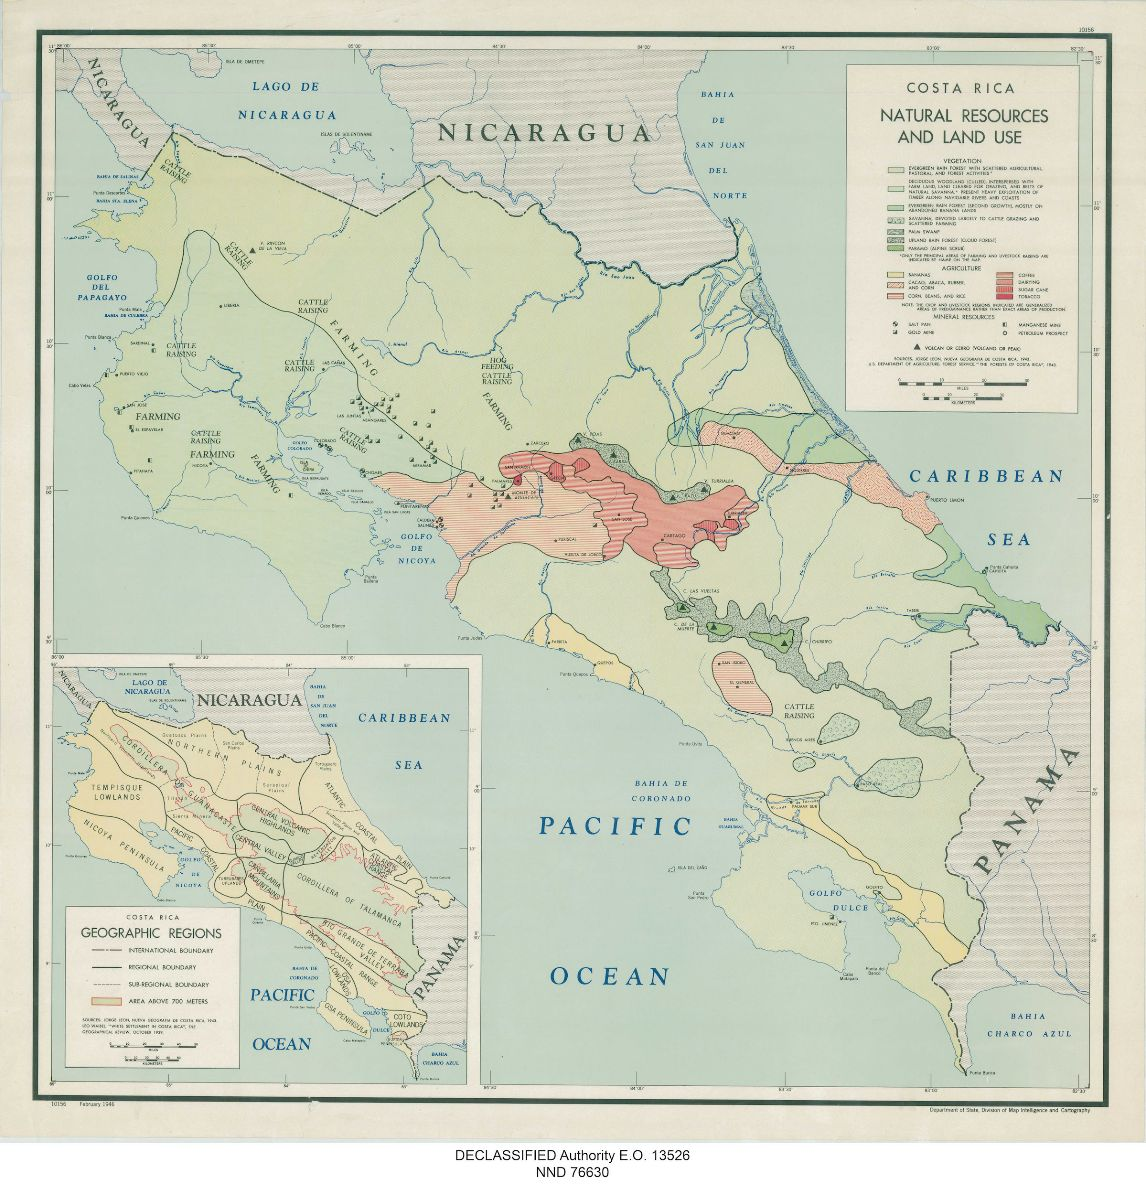 Map of Costa Rica natural resources and land use, 1946